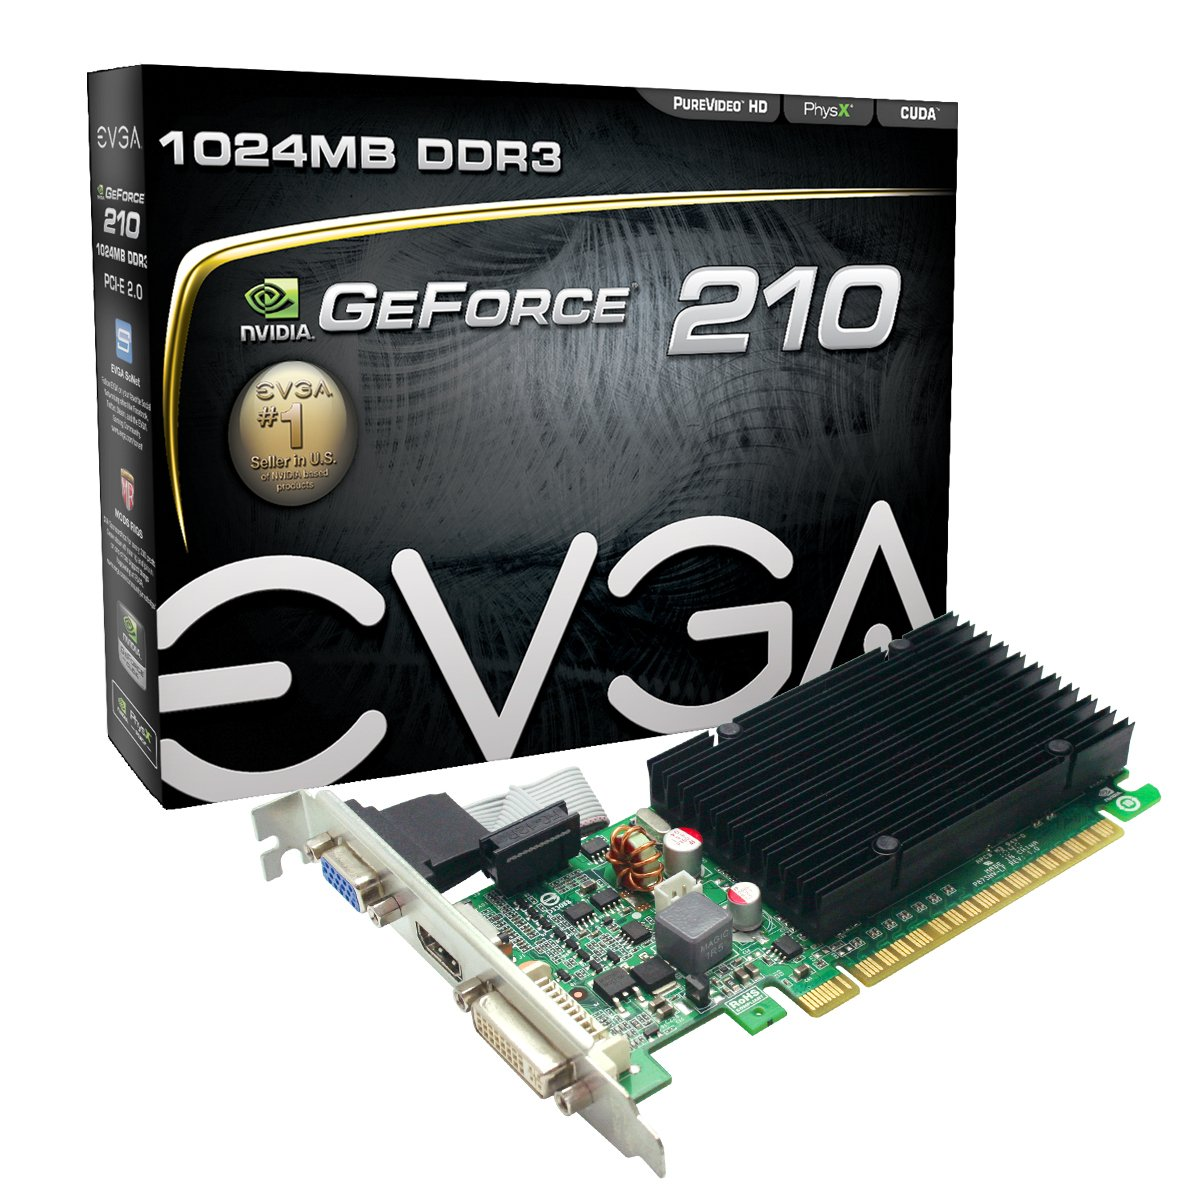 graphics card under $50